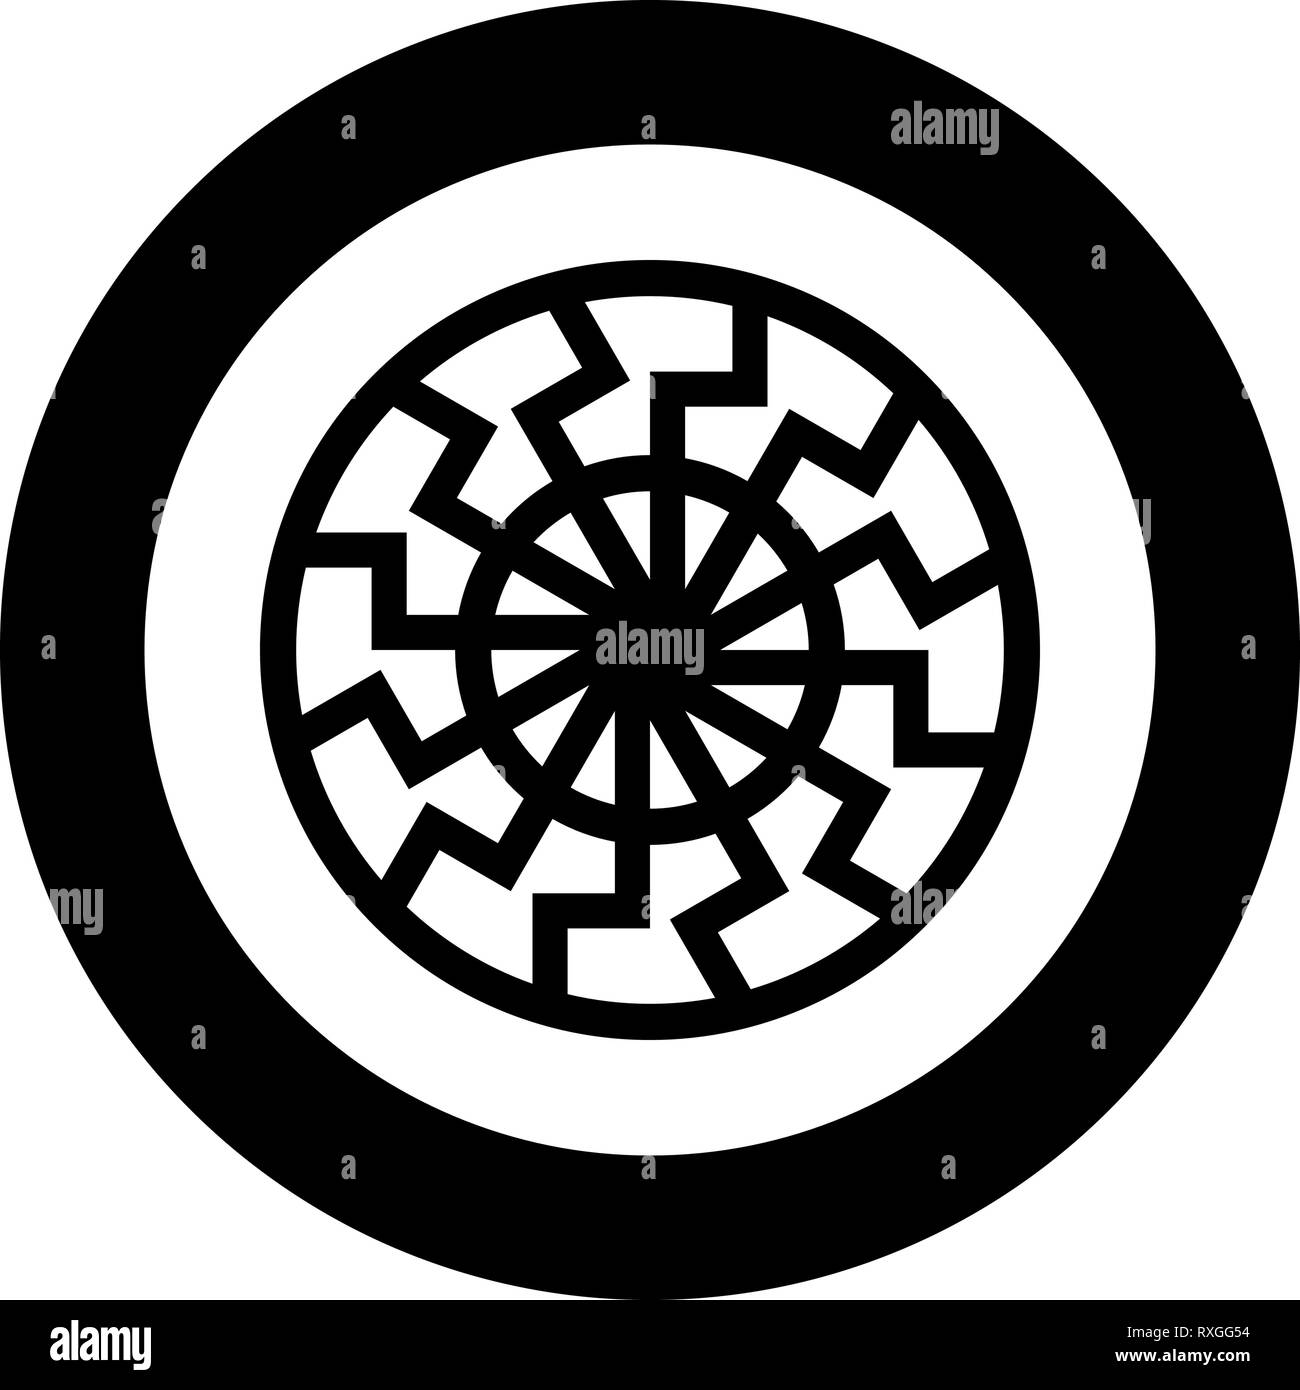 Black sun symbol icon black color vector in circle round illustration flat style simple image - Stock Image